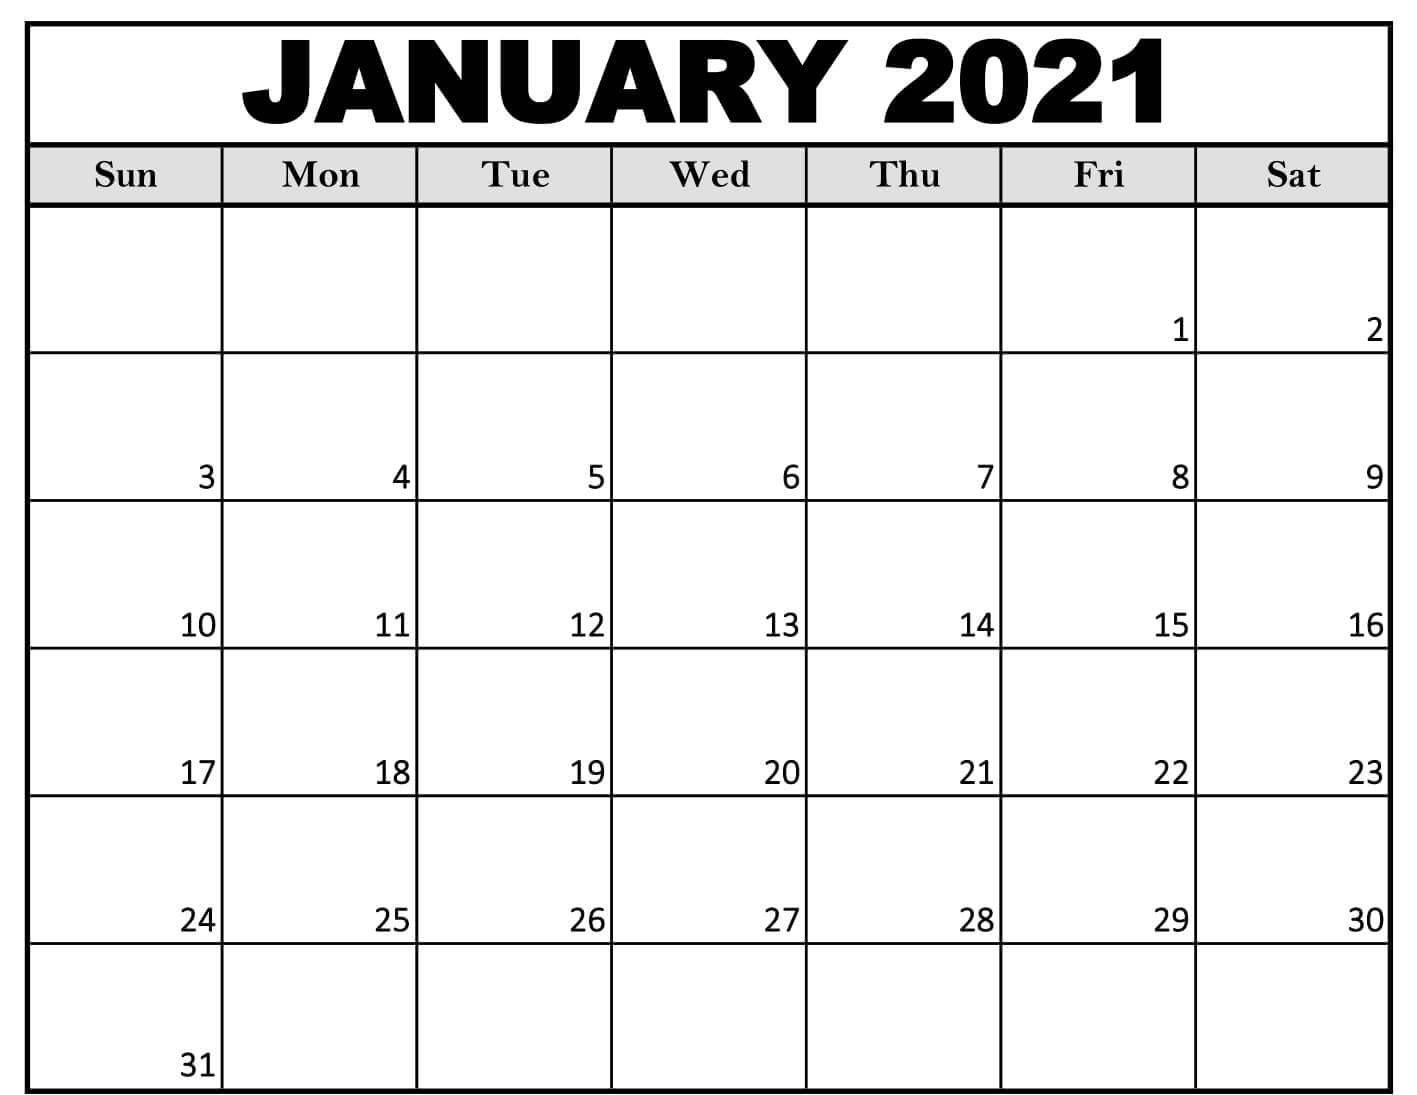 Blank Calendar For January 2021 - Free Printable 2021 Calendar Templates With Holidays pertaining to 2021 Free Printable Weekly Calendar Blank Image